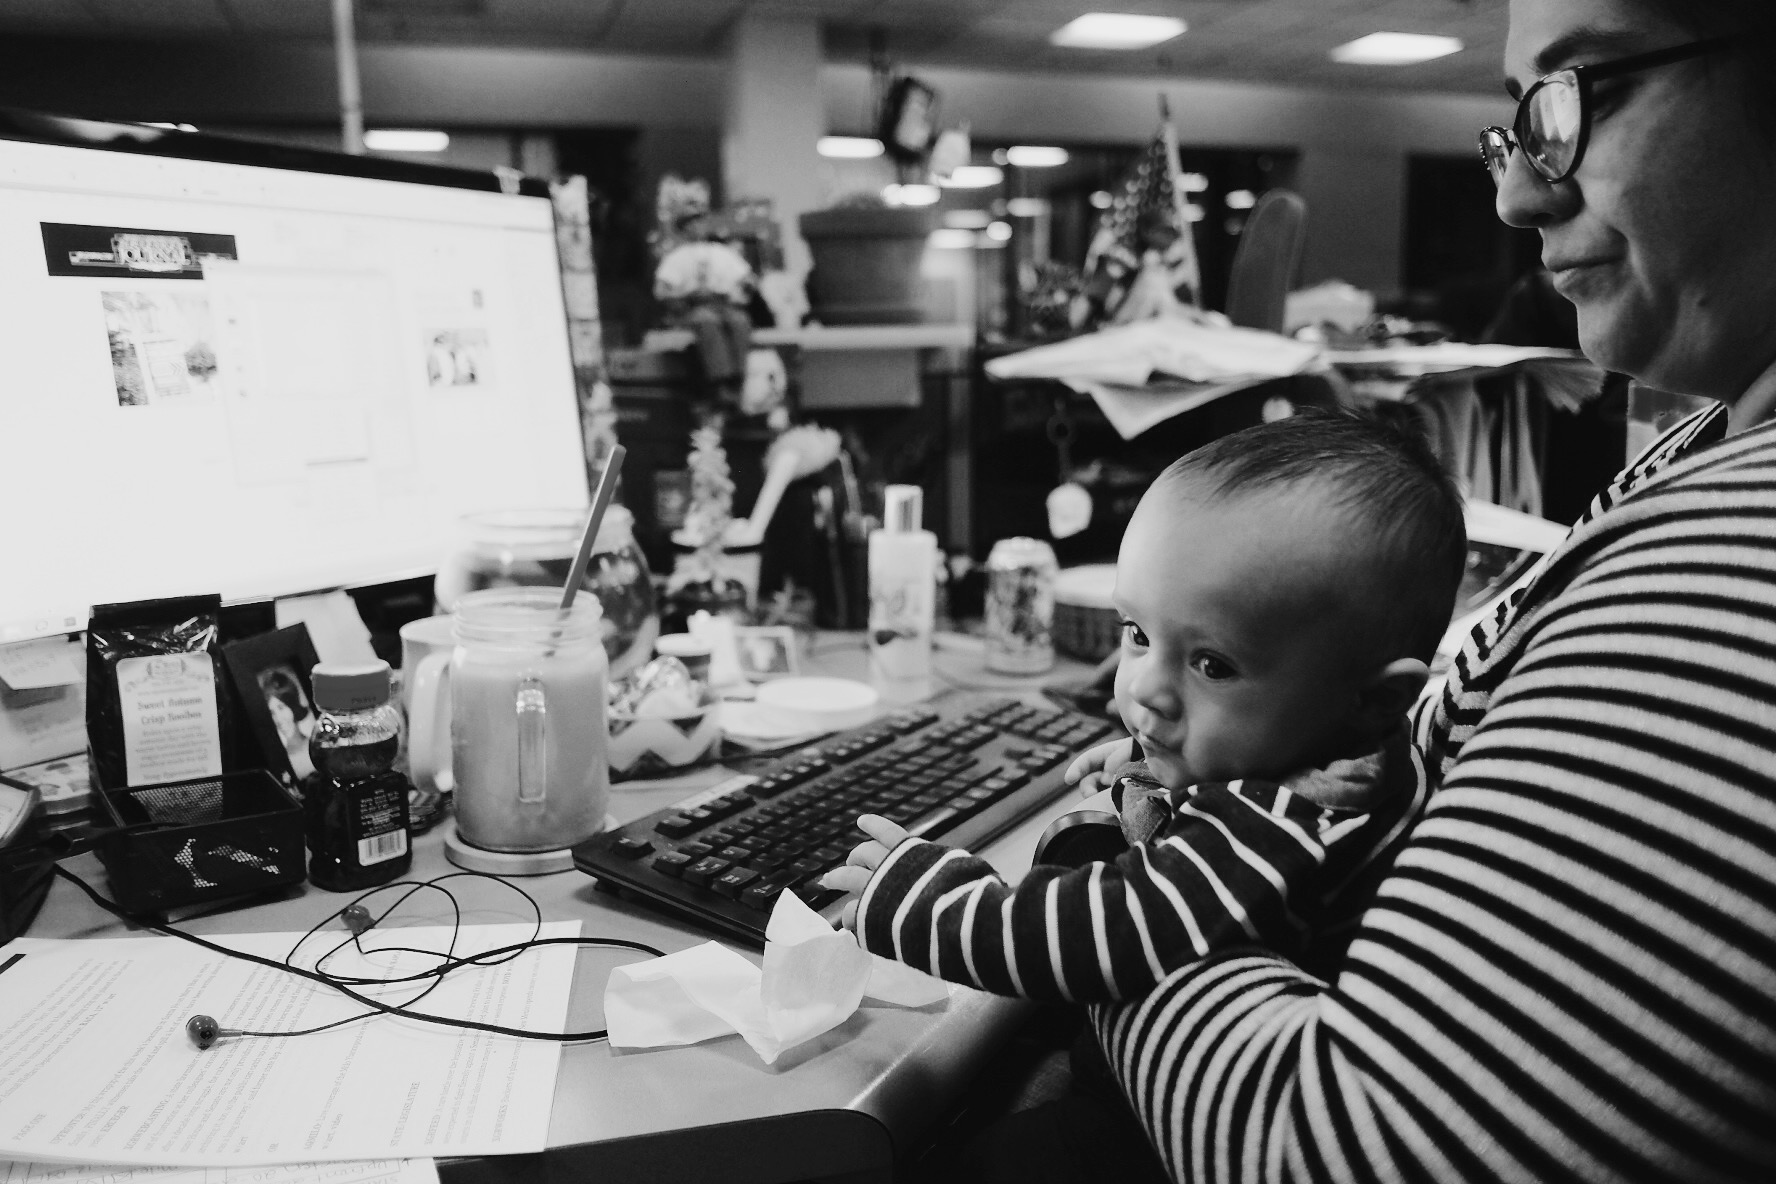 Four-month-old Moby Hjelm helps Beth Trujillo lay out A1 on Friday, Jan. 27, 2017, on his mother's last day the Albuquerque Journal.